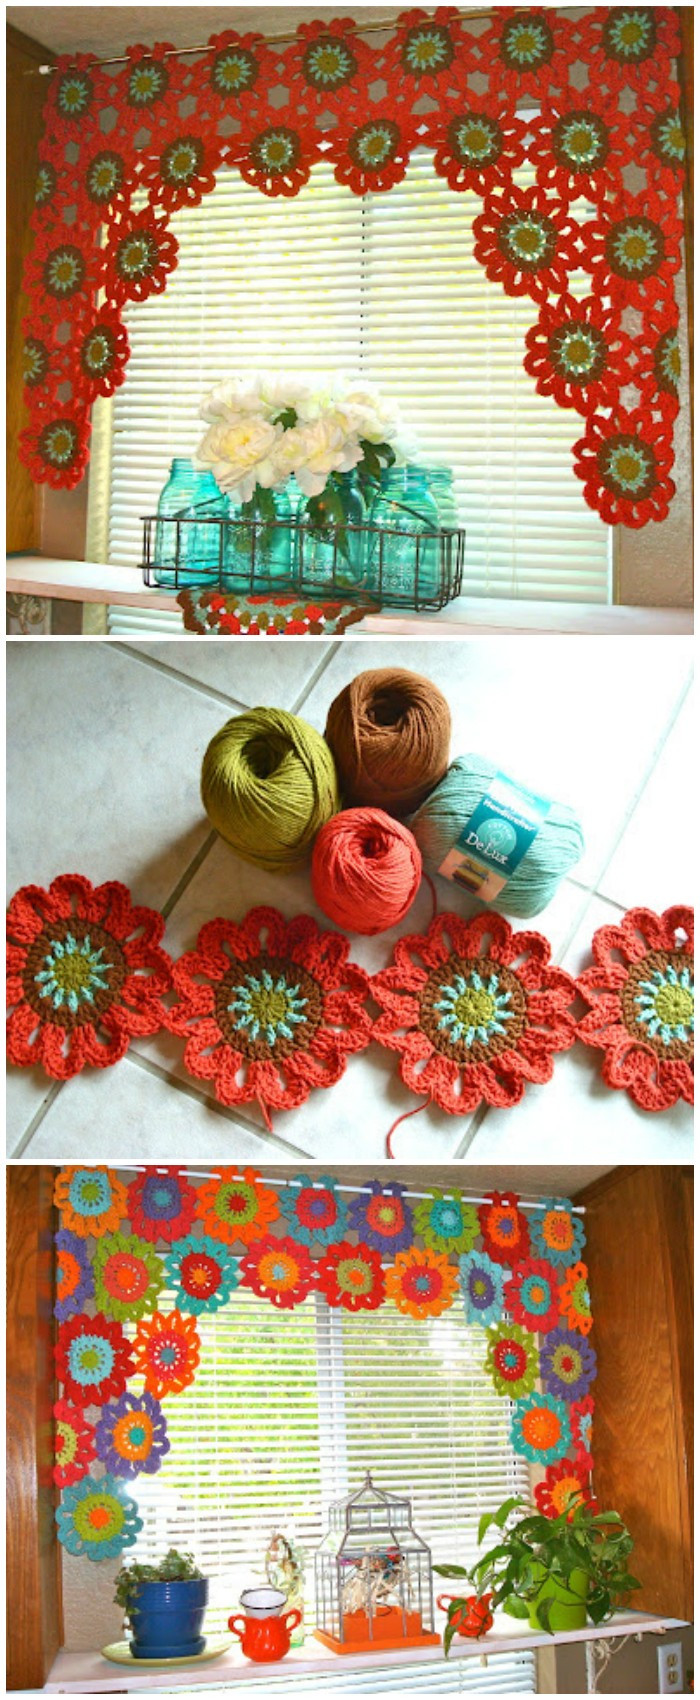 Crochet Home Decor New Free Crochet Curtain Patterns for Your Home Decor • Diy Of Amazing 43 Pics Crochet Home Decor